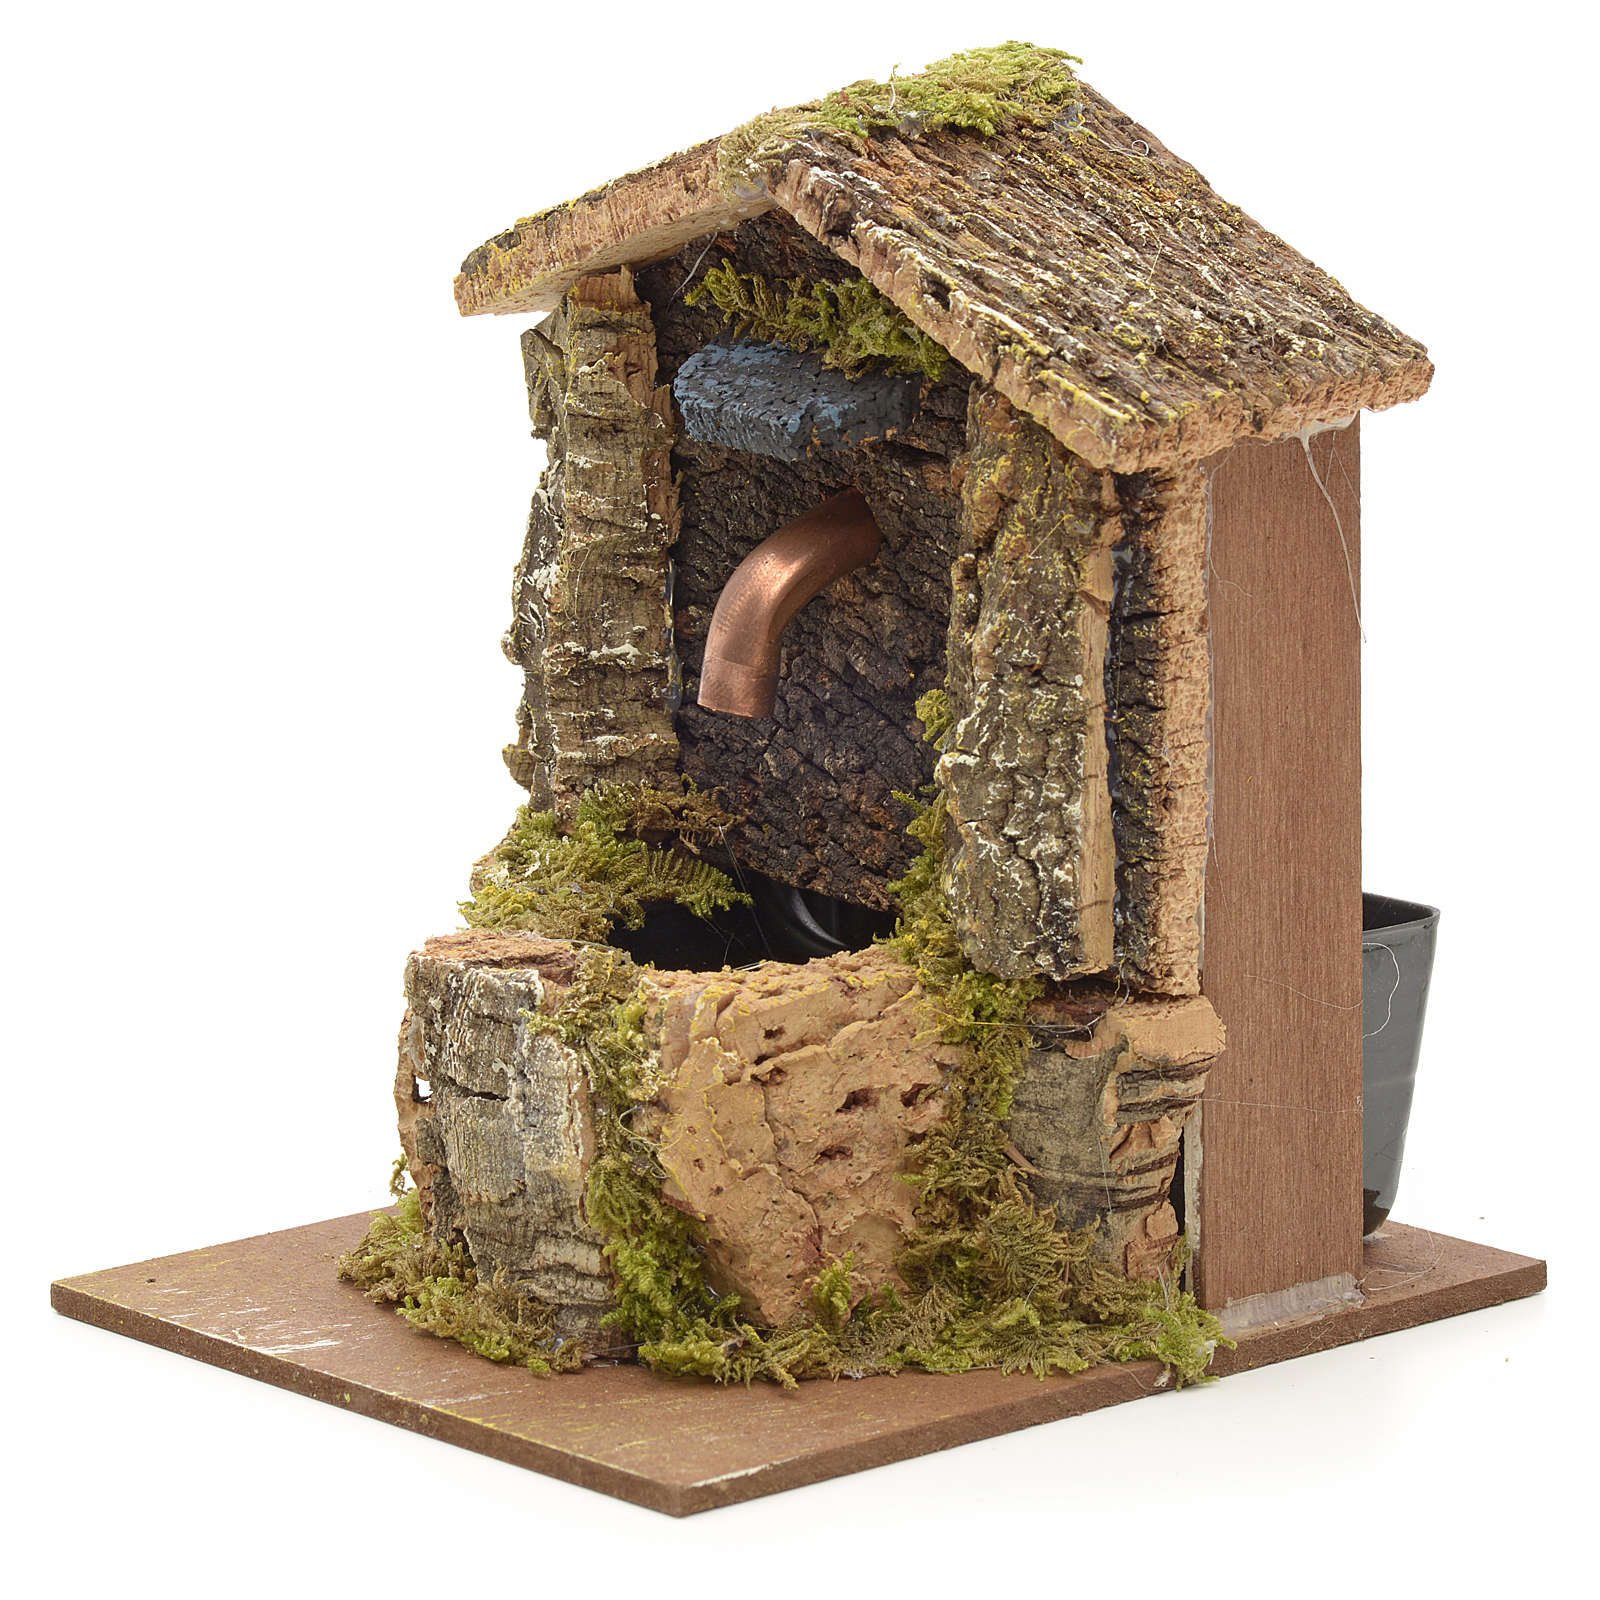 Nativity fountain with roofing made of cork 12x9x10cm 4